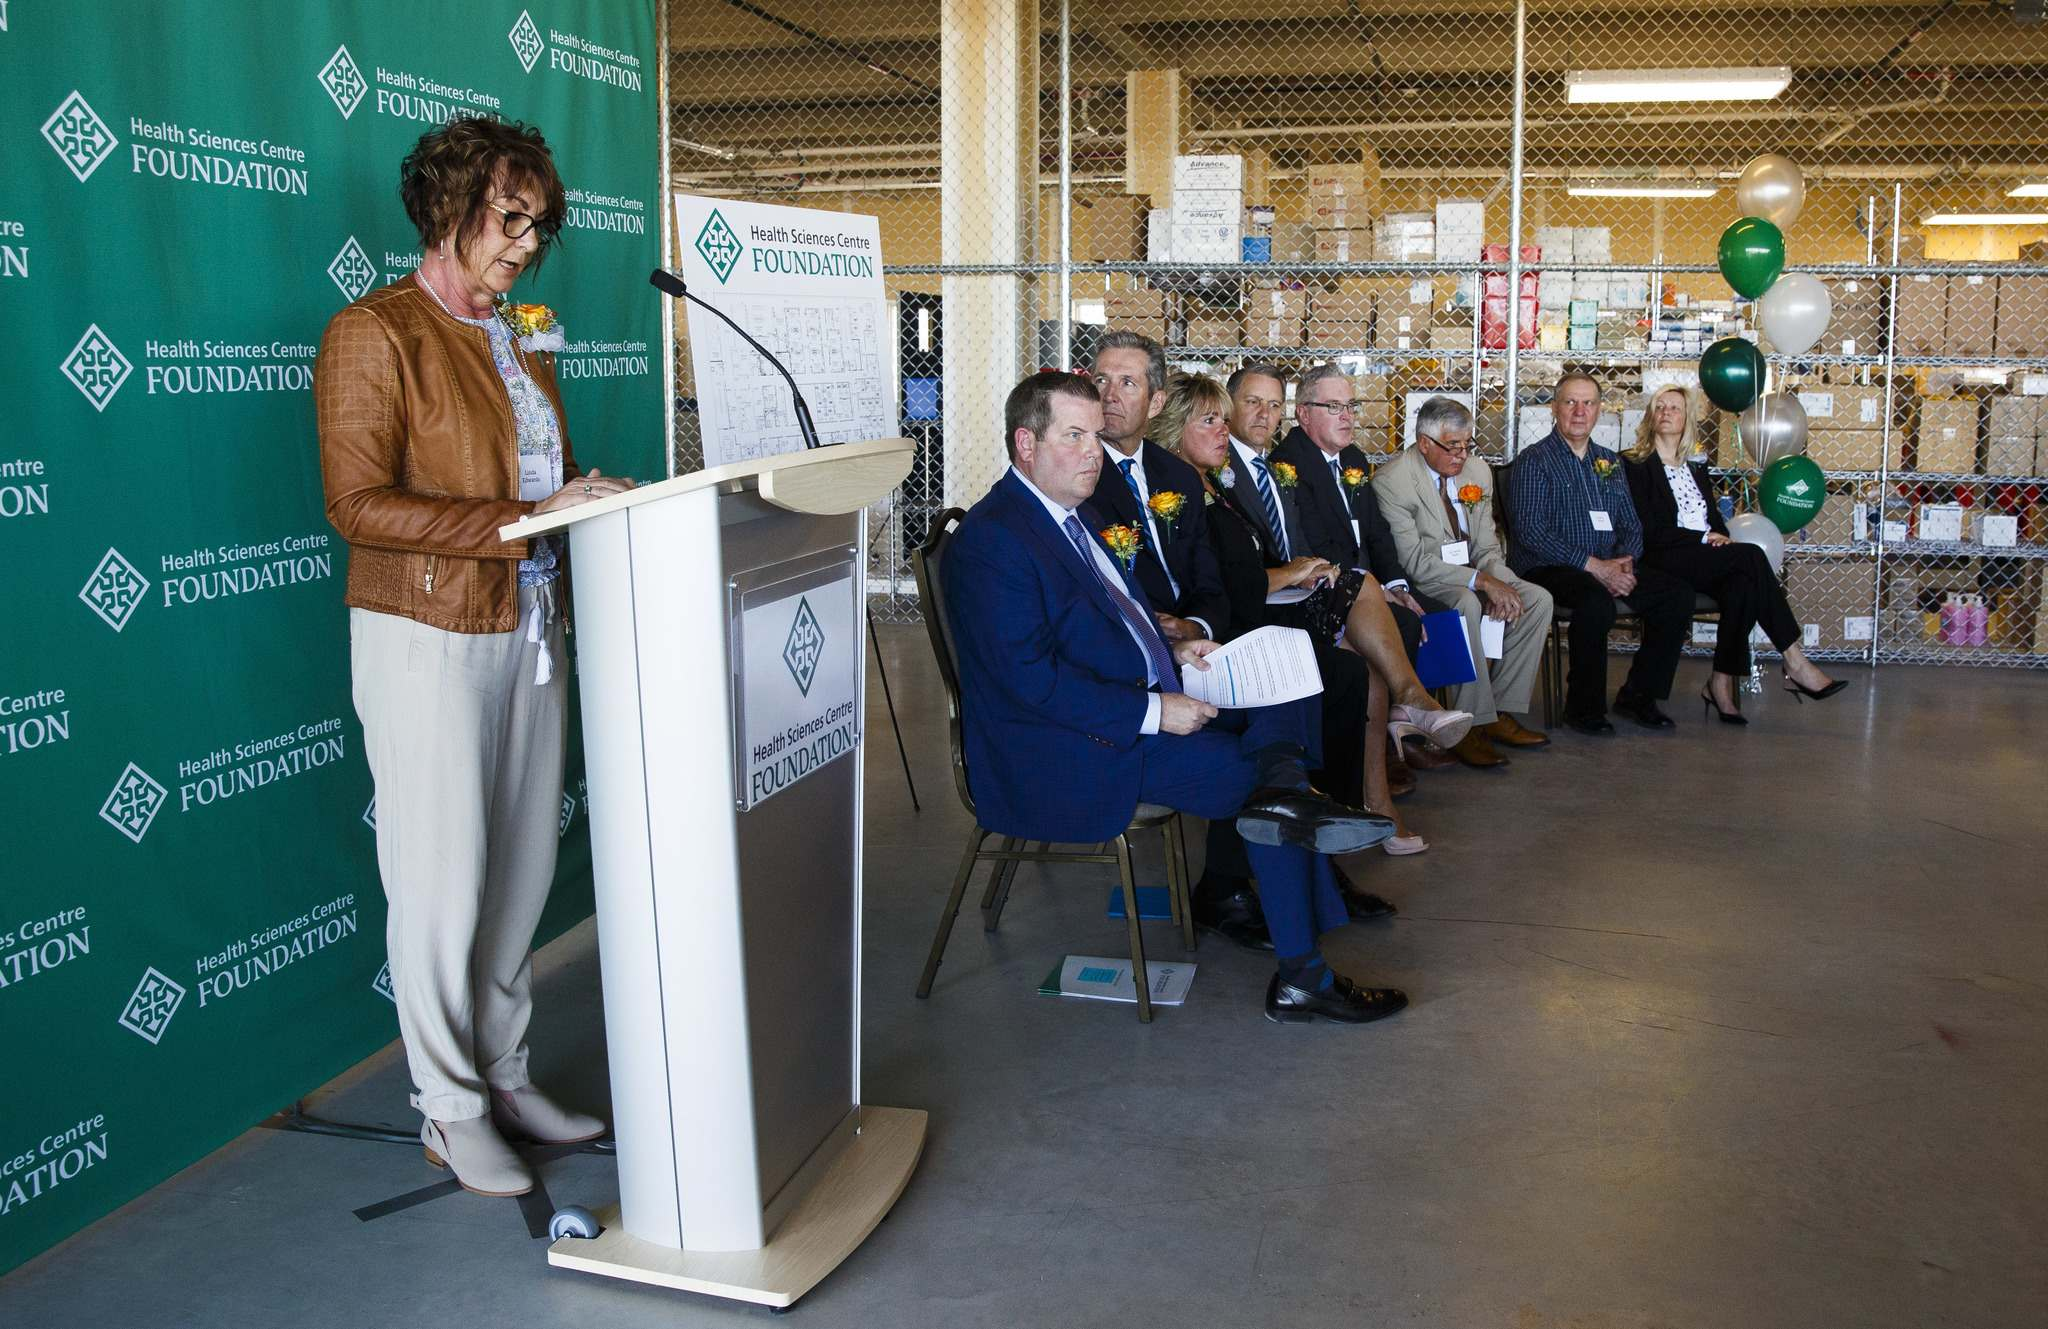 MIKE DEAL / WINNIPEG FREE PRESS</p><p>Linda Edwards a transplant patient speaks during an announcement that the Health Sciences Centre Foundation will build a new transplant clinic on the third floor of Manitoba's largest hospital thanks to $3 million from two anonymous donors and $2.5 million from the province.</p>